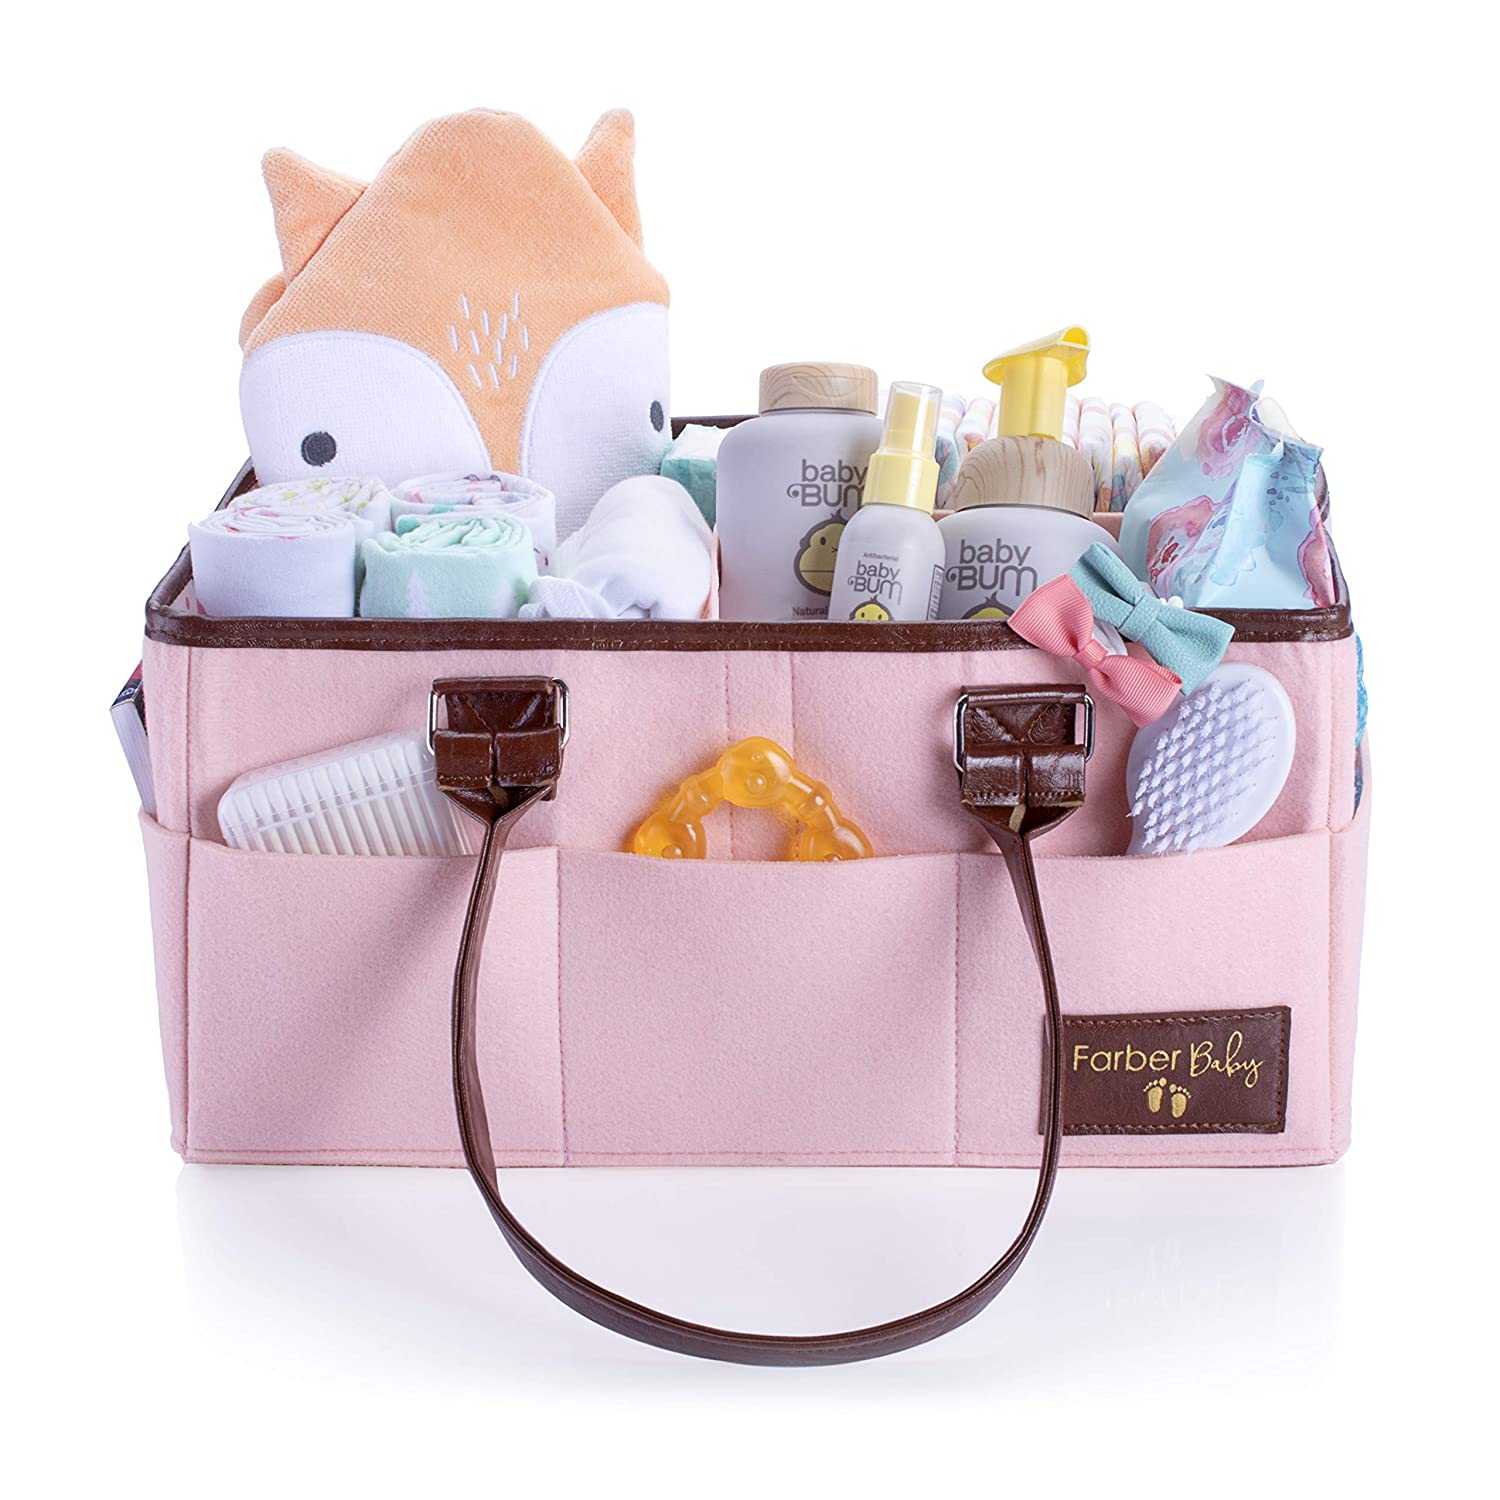 Baby Diaper Caddy Nursery Organizer - Baby Shower Gift Basket for Boys Girls | Large Portable Storage Bin for Toys Wipes | Newborn Registry Must Haves (Pink) Farber Essentials